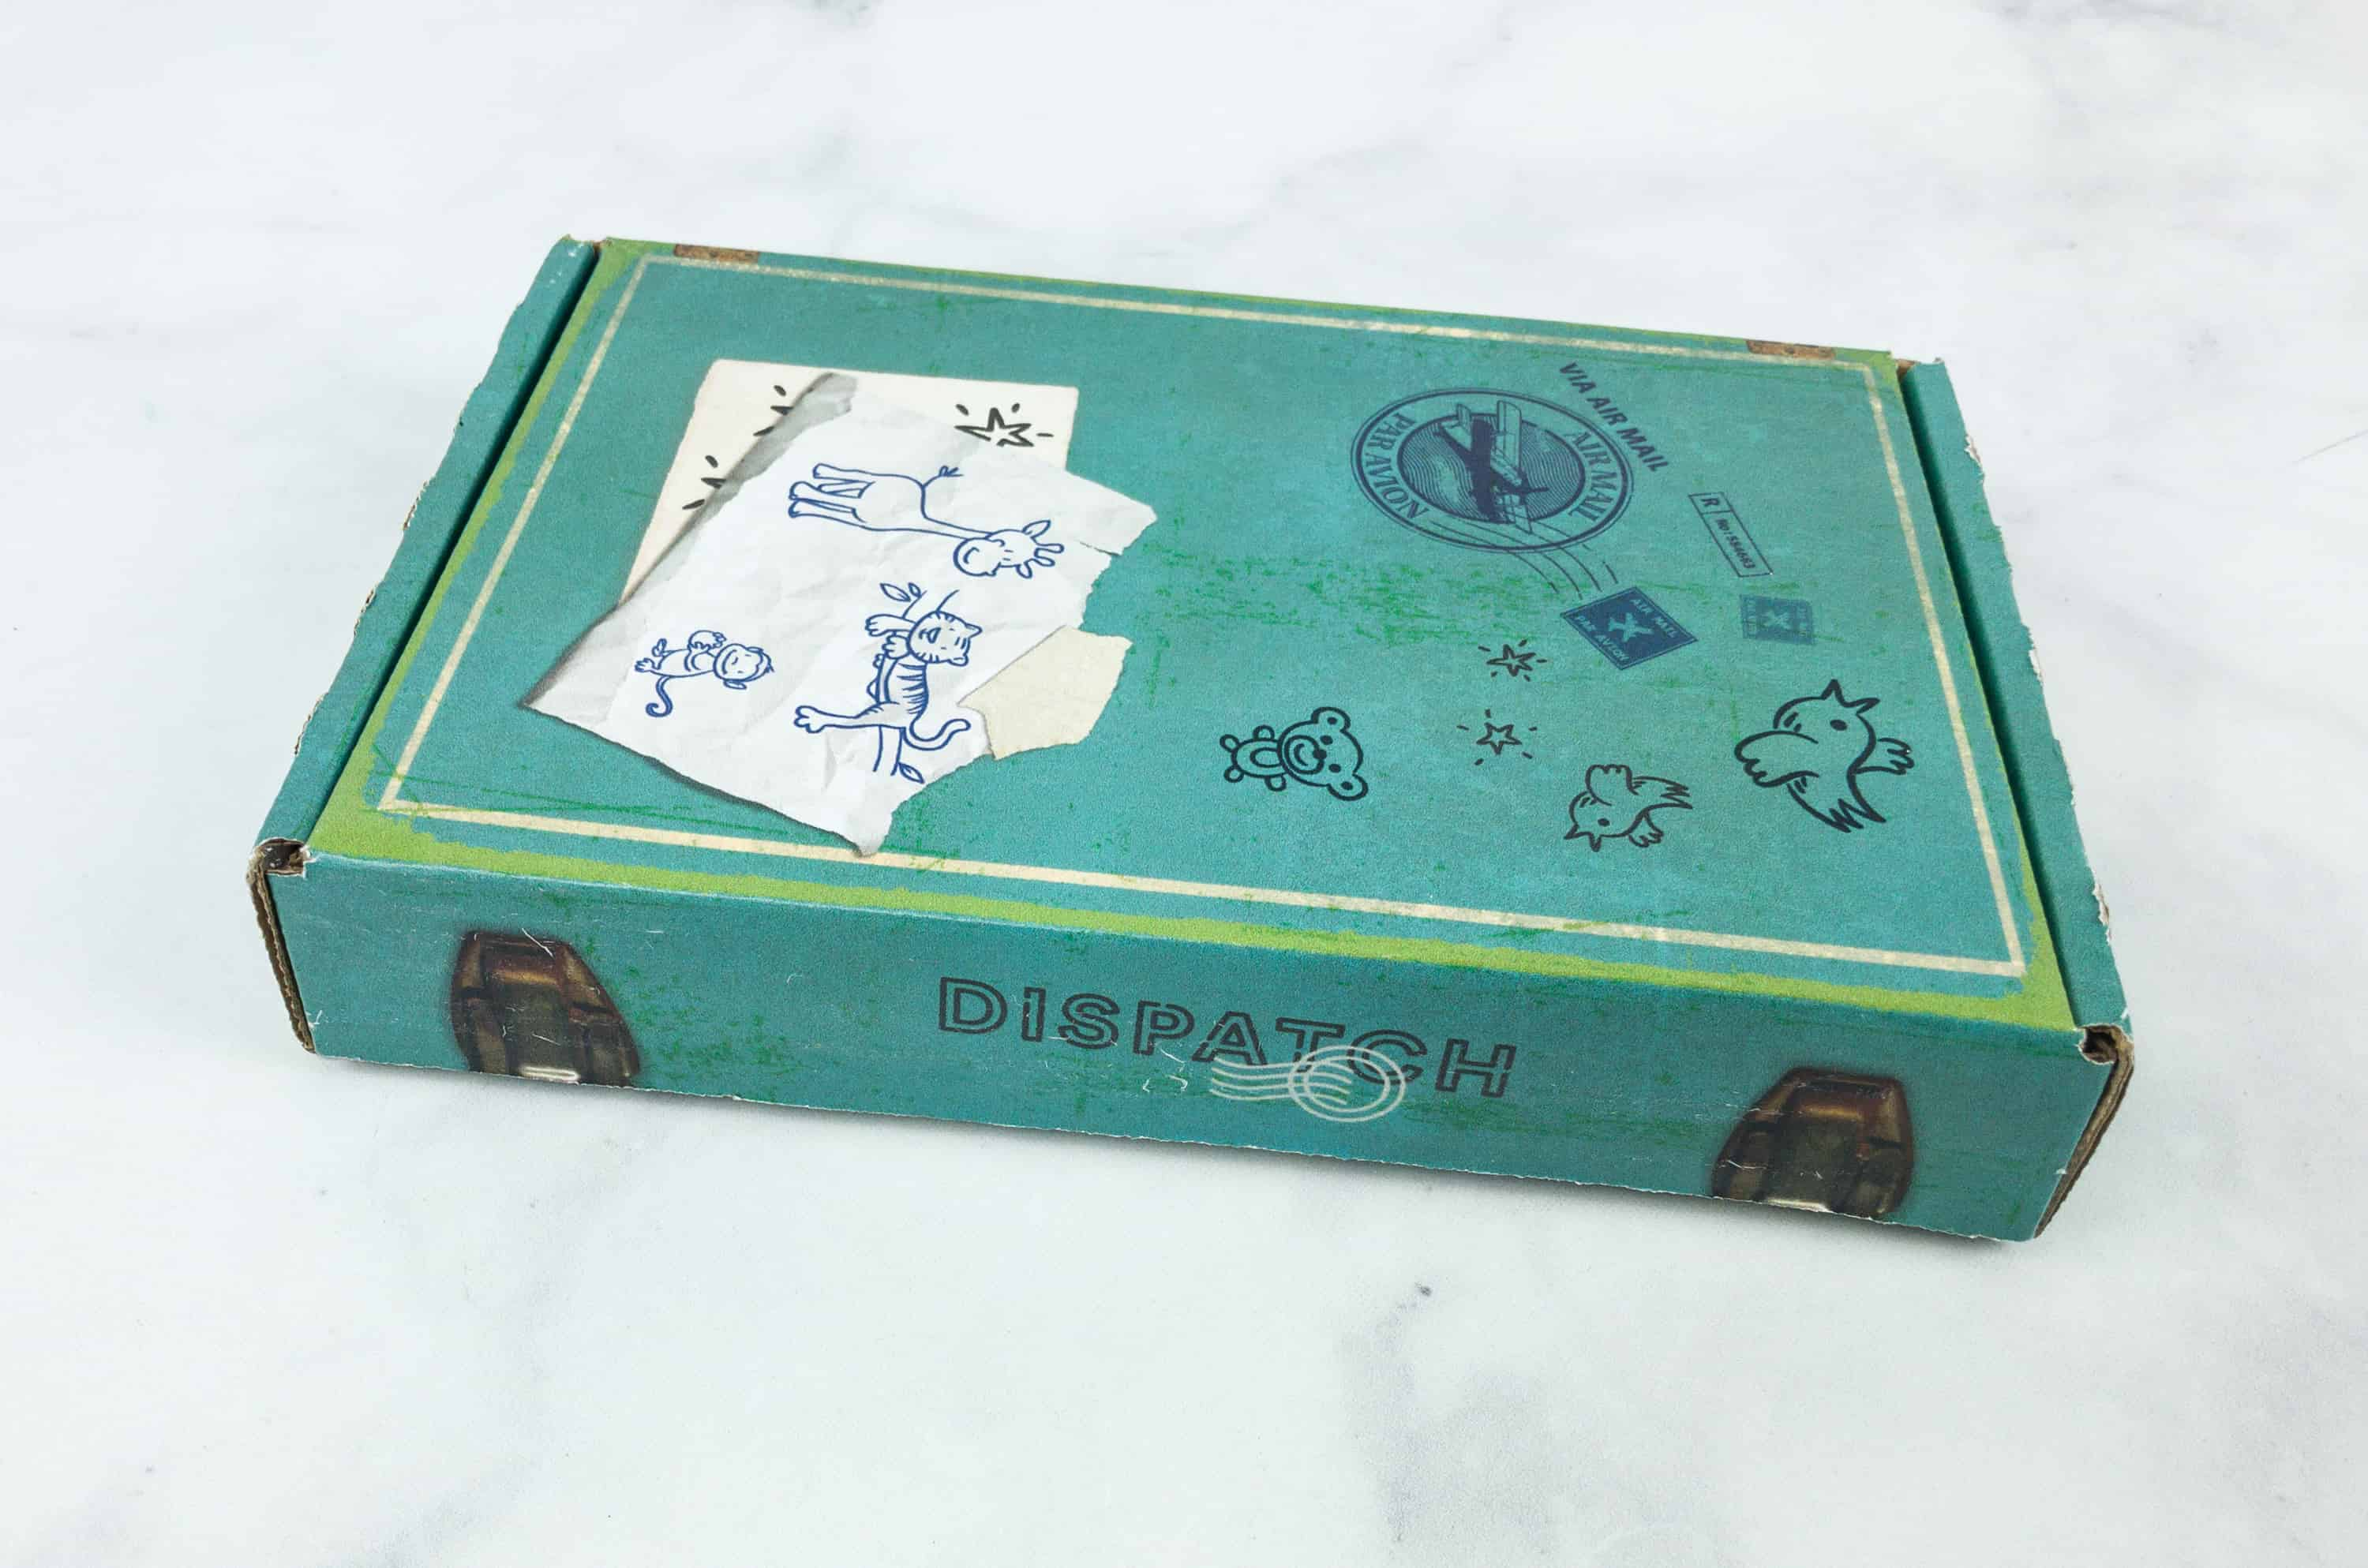 Dispatch Kids by Breakout Games Subscription Box Review + Coupon – Case of the Missing Coin Box 3